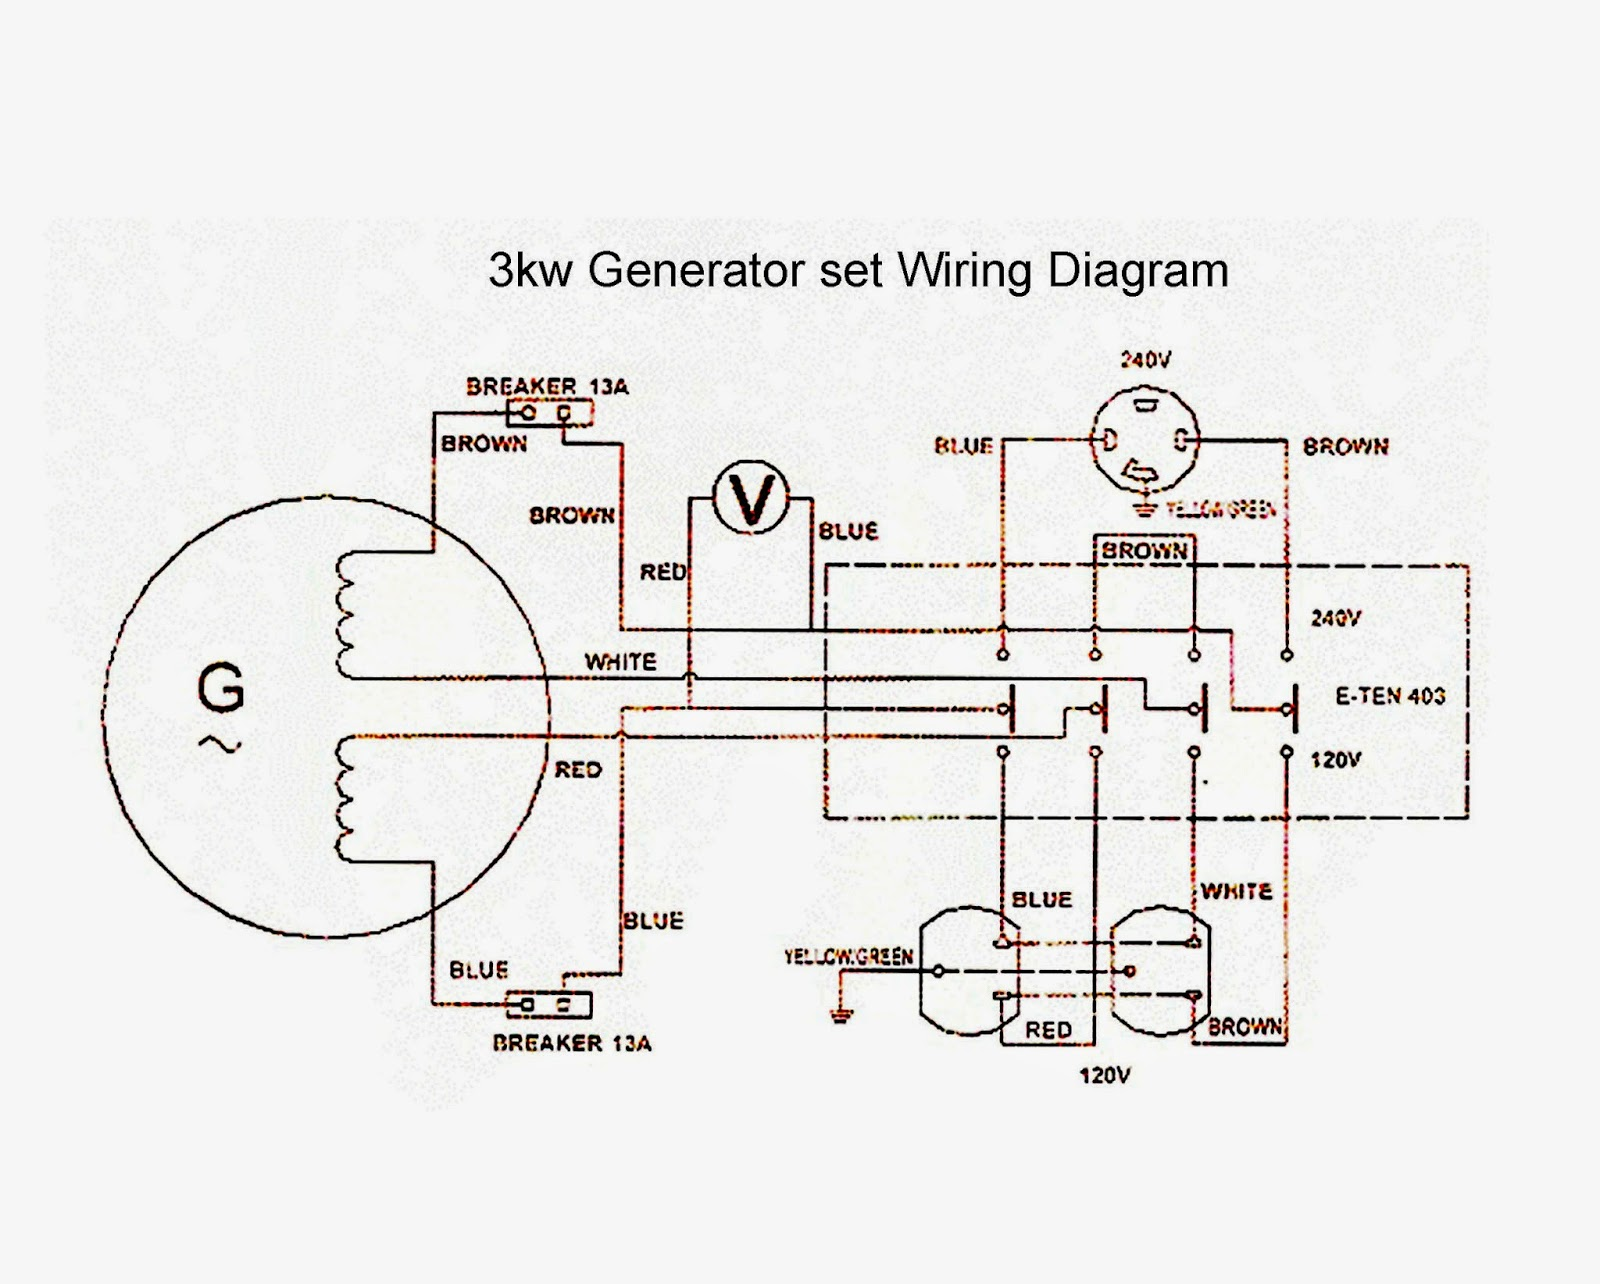 3000w+gensetswiringdiagram+1 28 [ wiring diagram of generator ] starter generator wiring wiring diagram freeware at gsmx.co